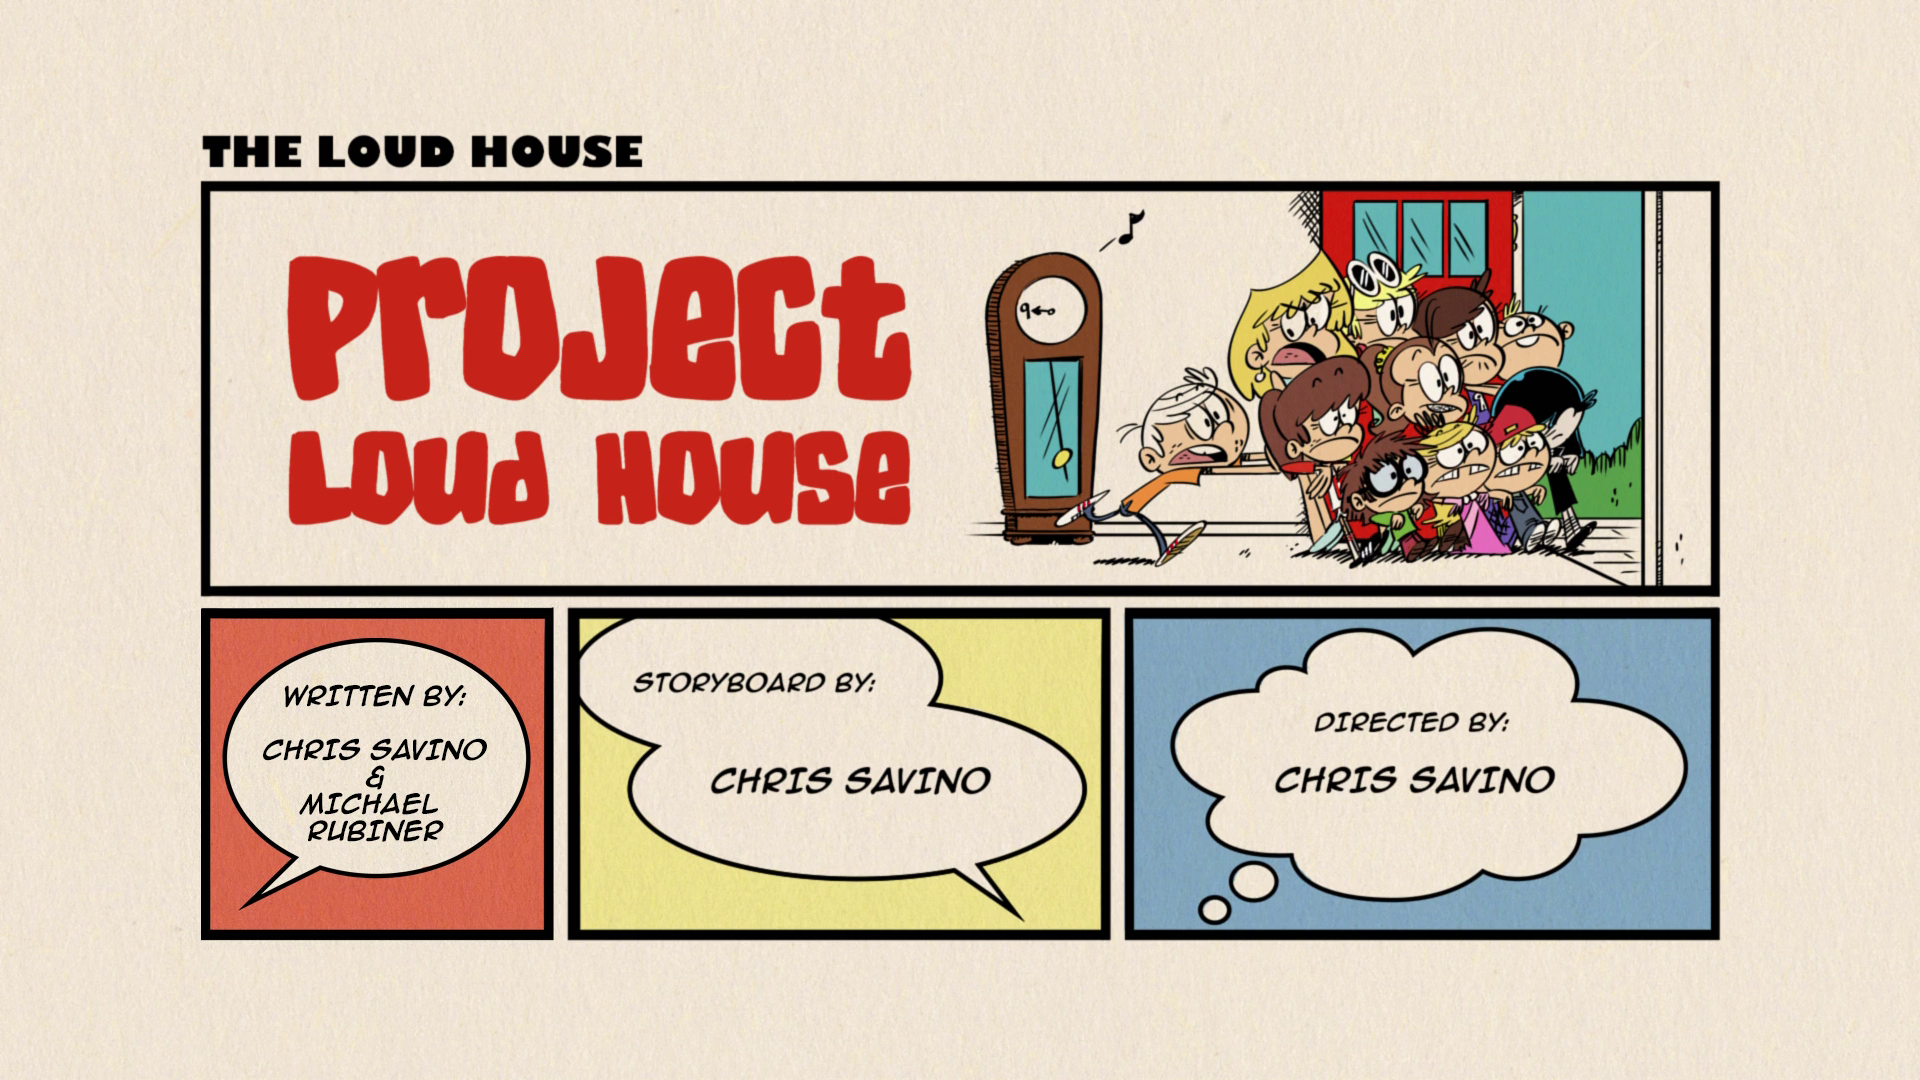 the loud house space invader script